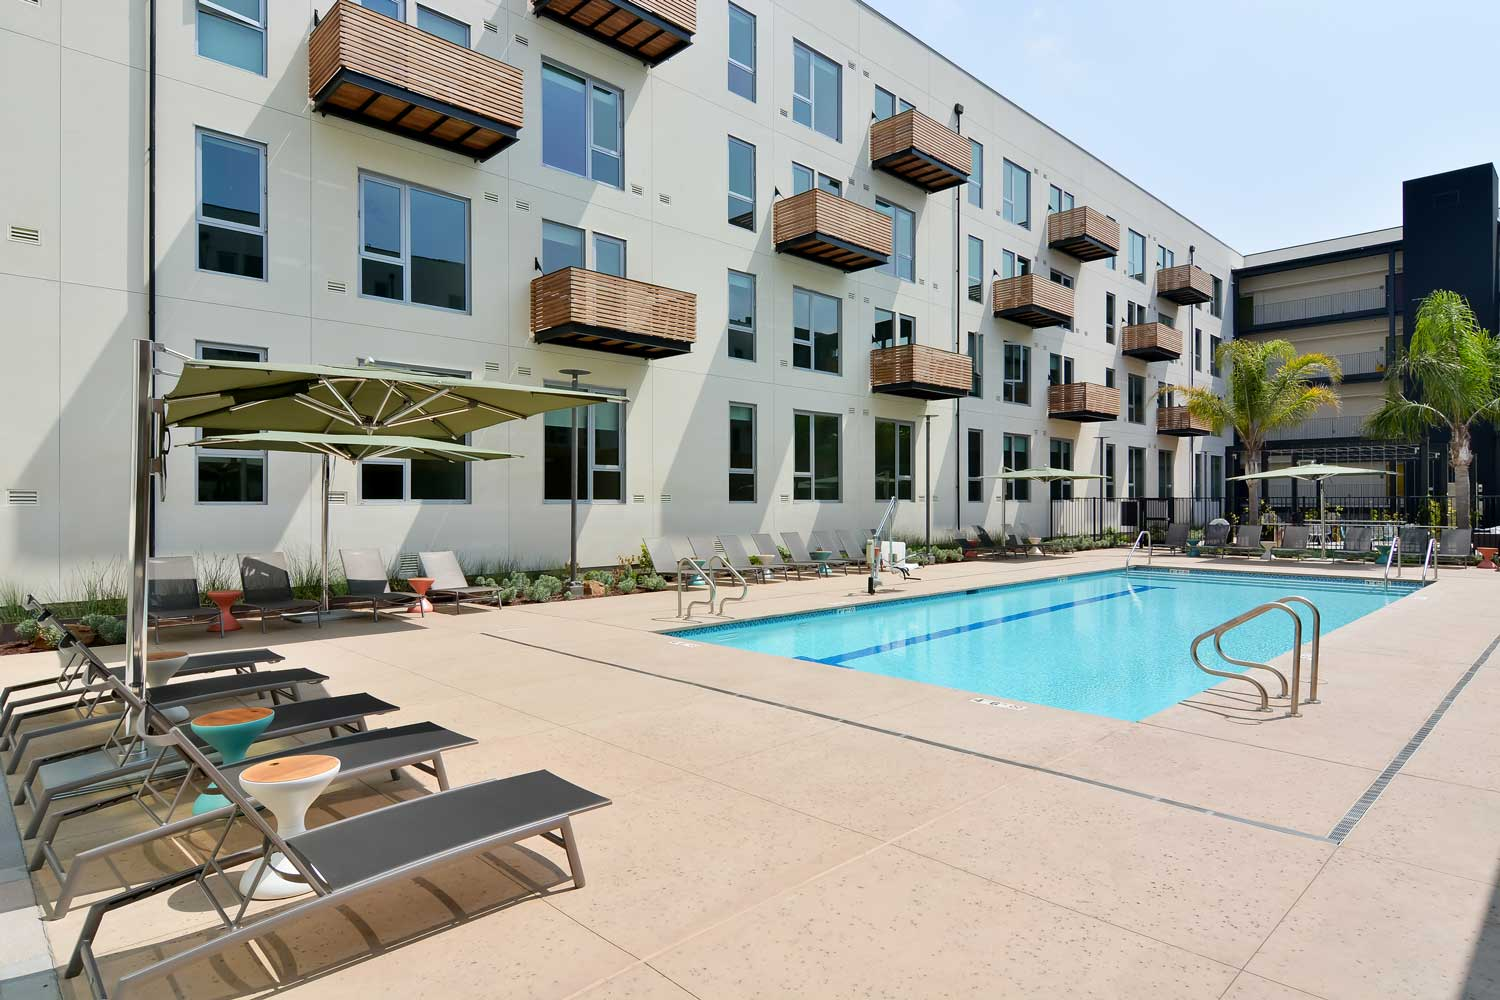 Luxury Apartments in Union City-The Union Flats Sparkling Pool with Lounge Chairs